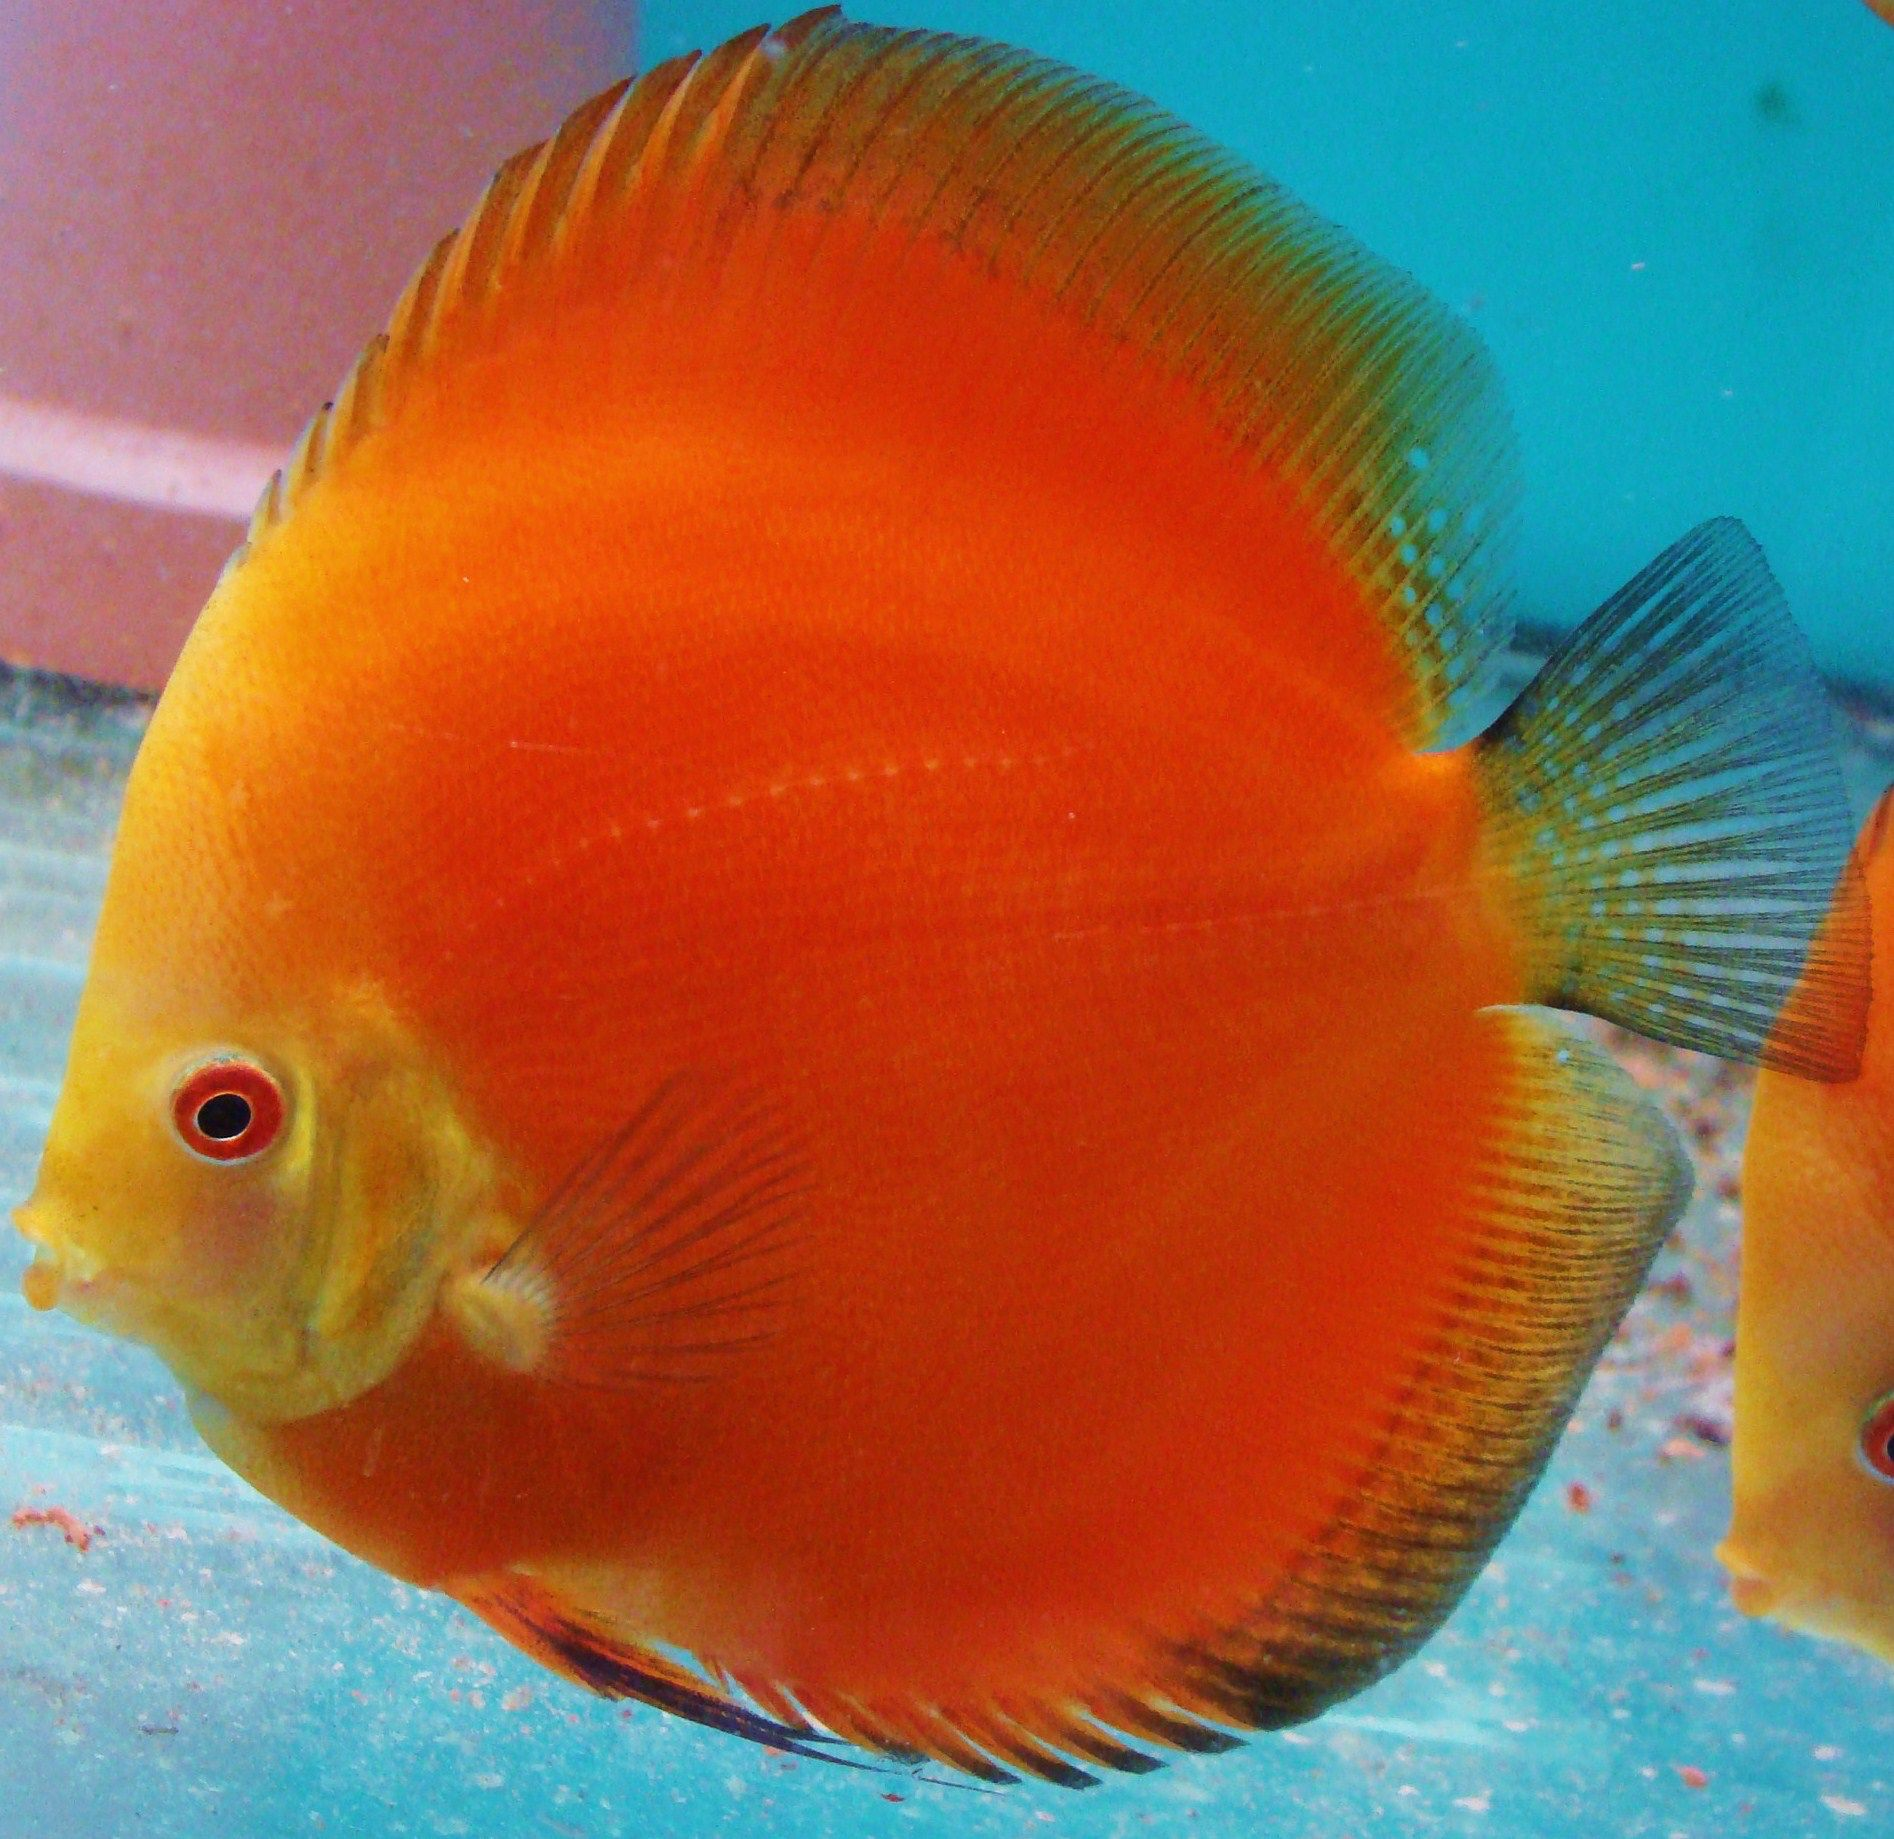 Image from http://www.discus-siner.sk/en/images/chovane-formy/RED ...